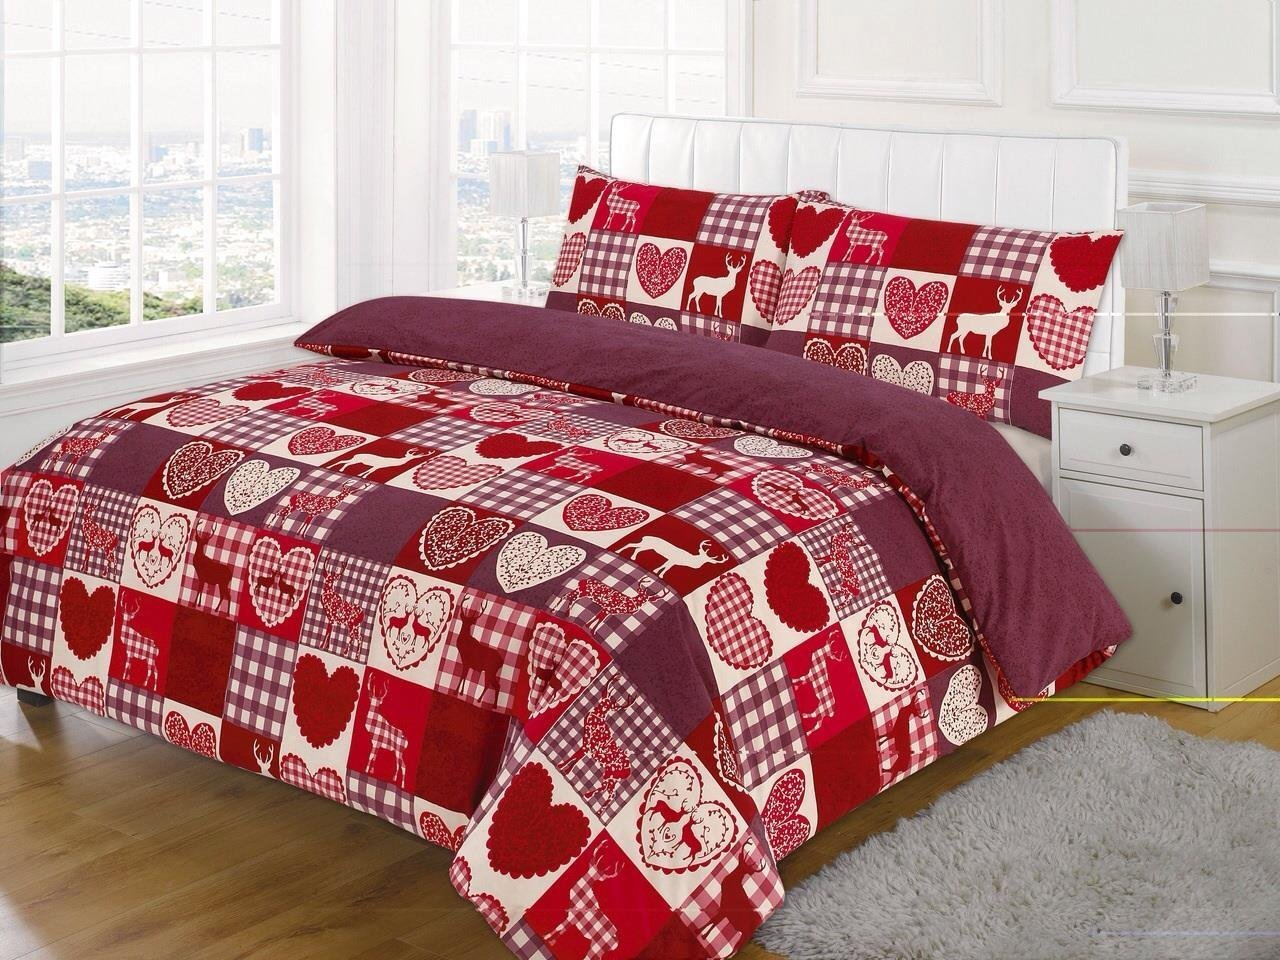 lustwithalaugh apply duvet it red ideas be to cover careful design